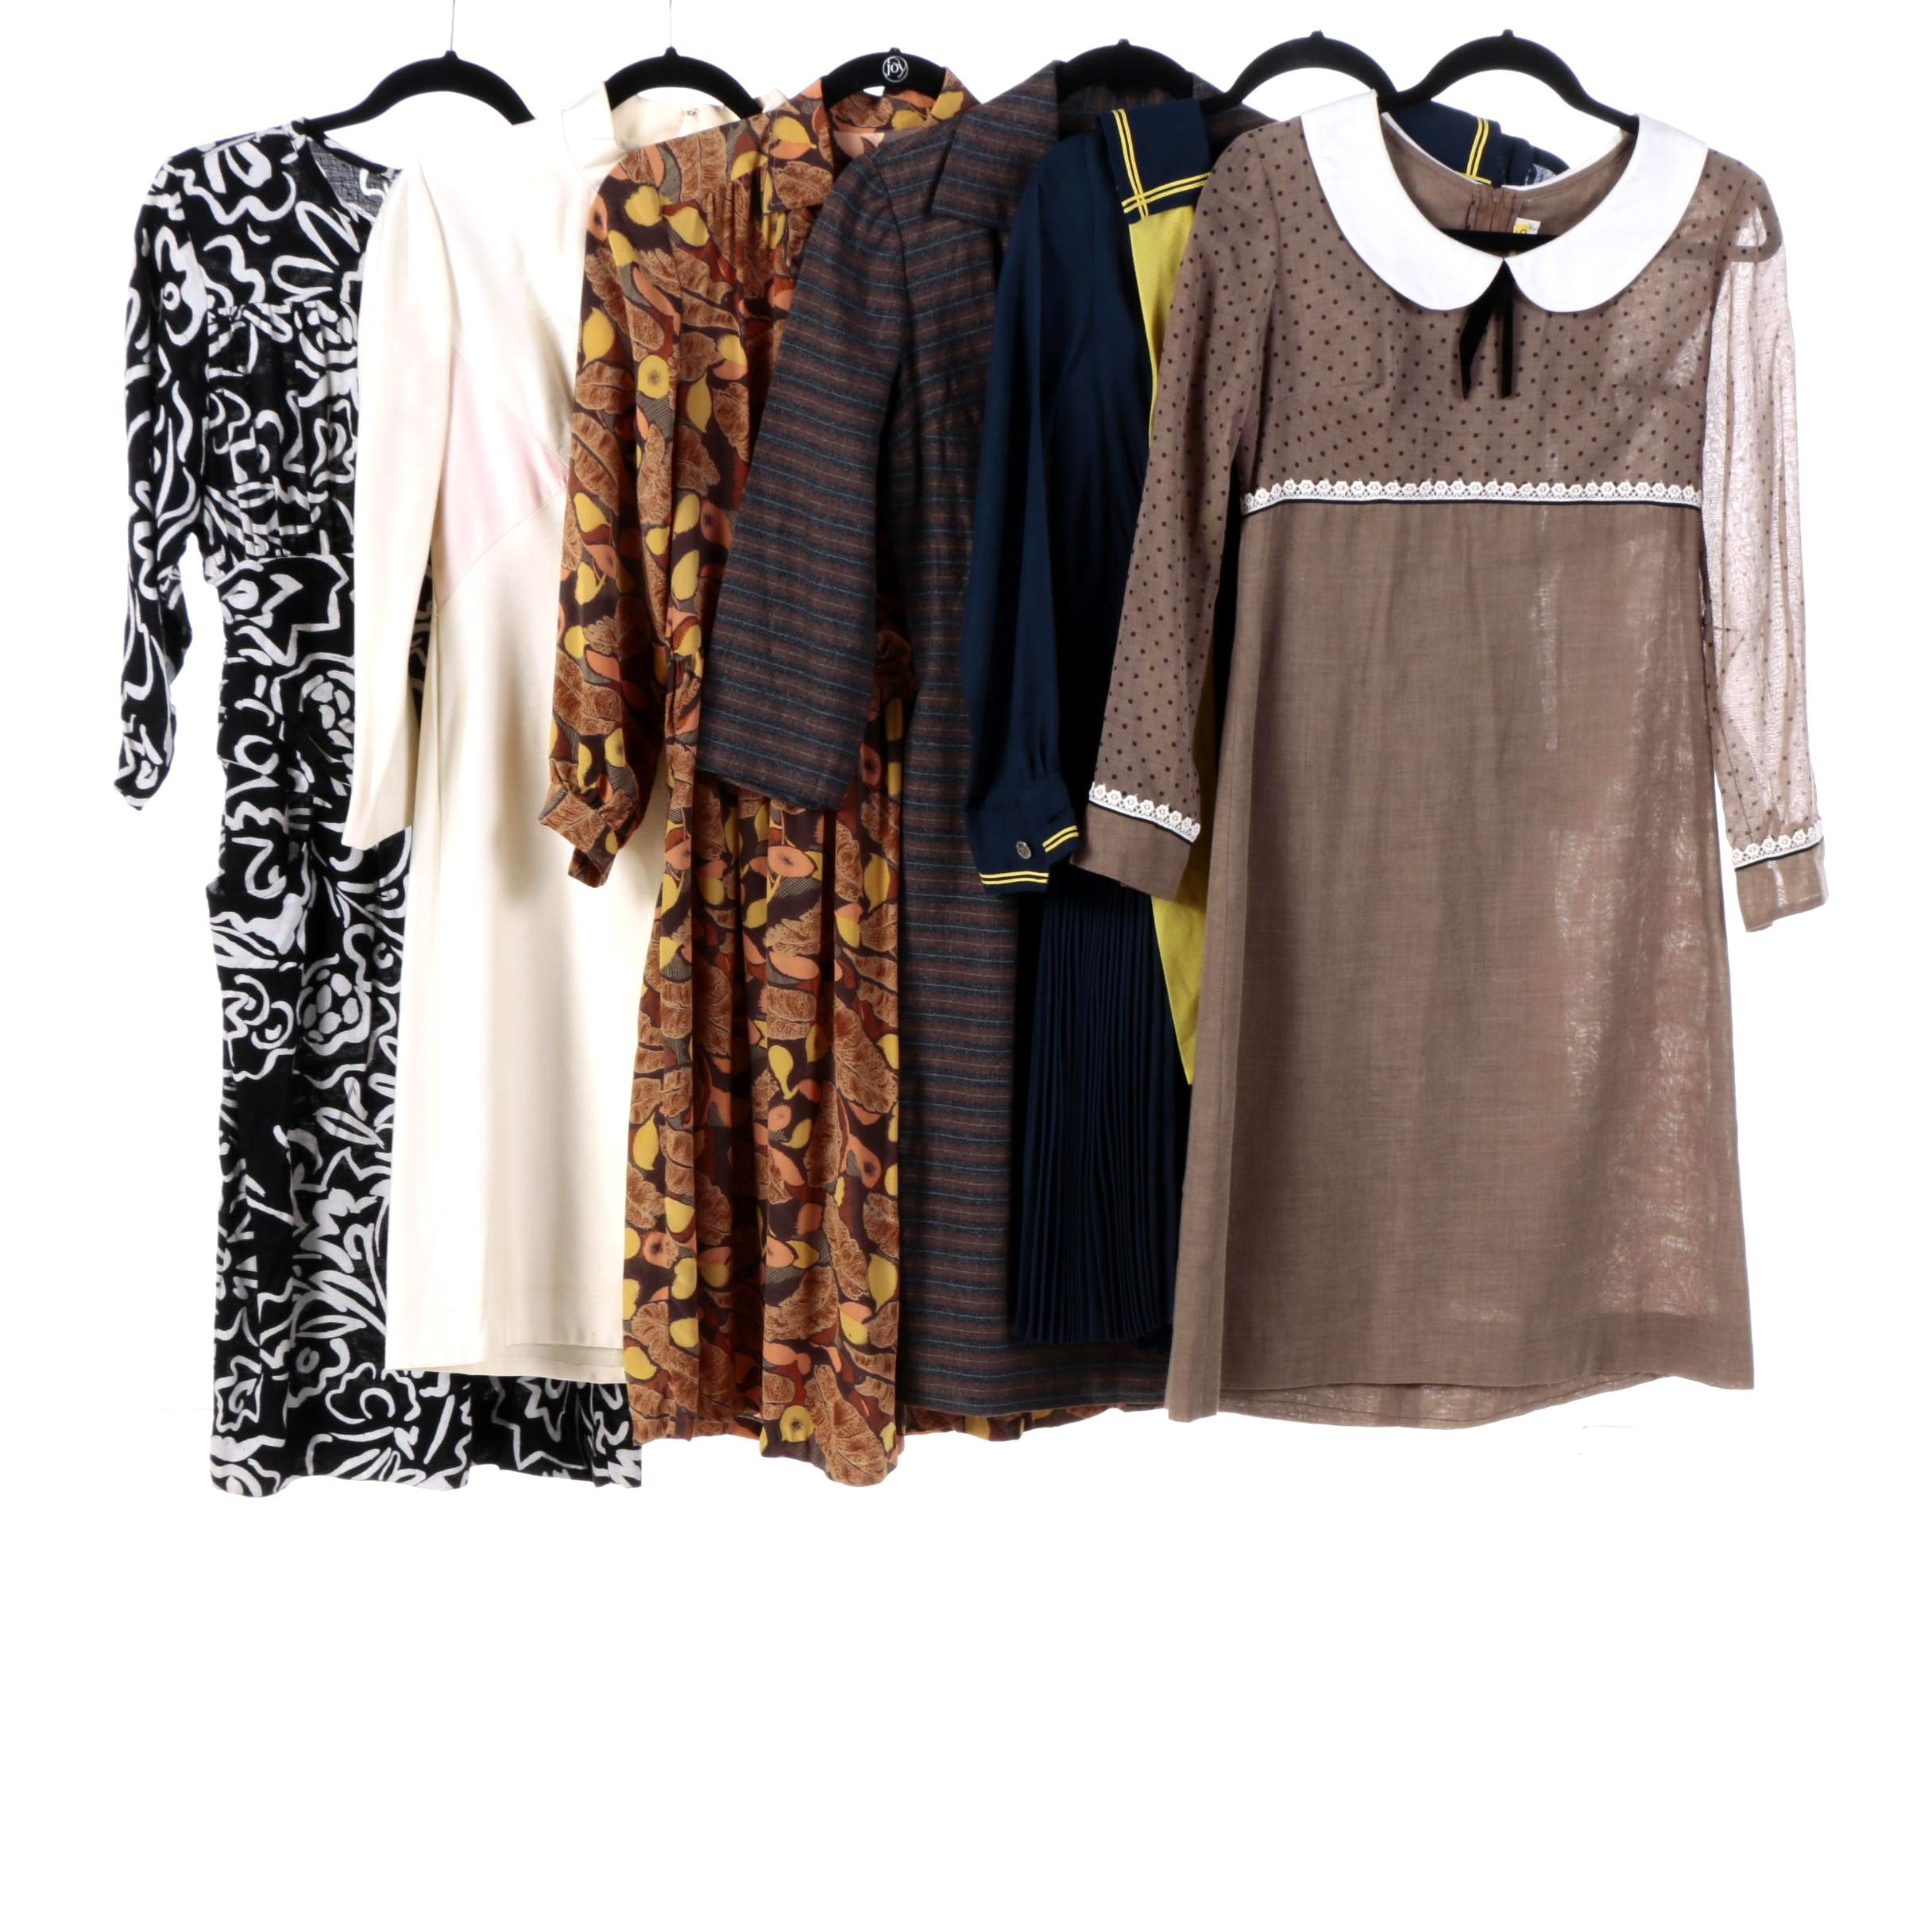 1970s Vintage Dresses Including Gay Gibson, Silk